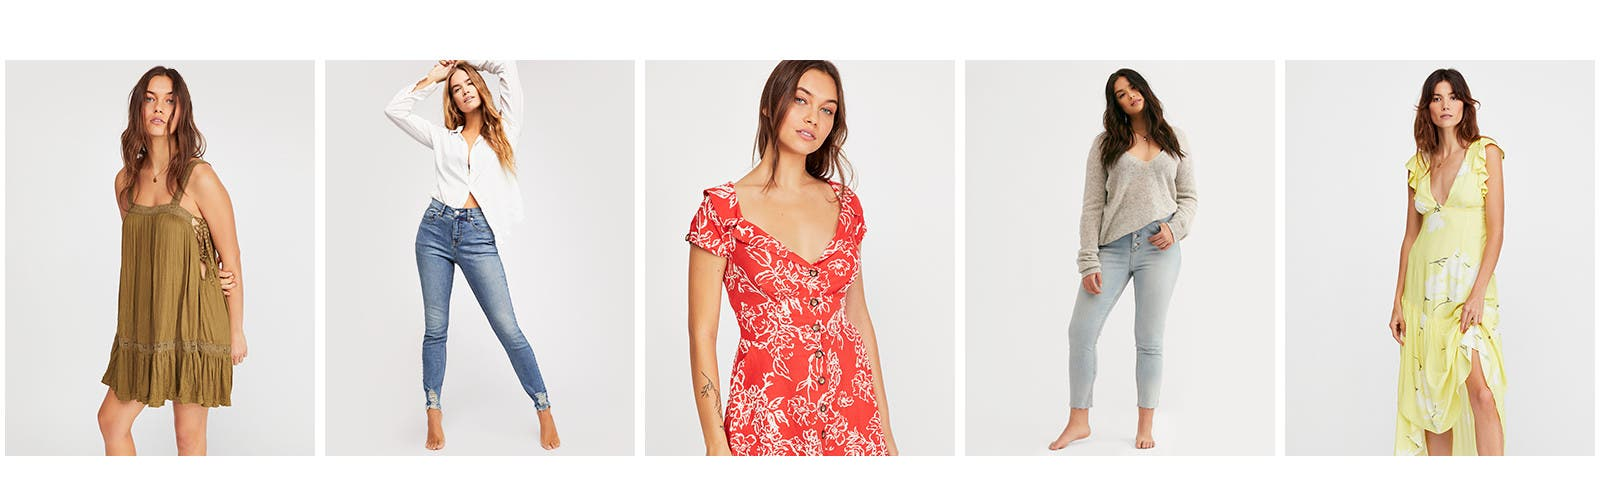 4ede59ef95 Spring Fever  New Arrivals in Full Bloom. Free People New Arrivals